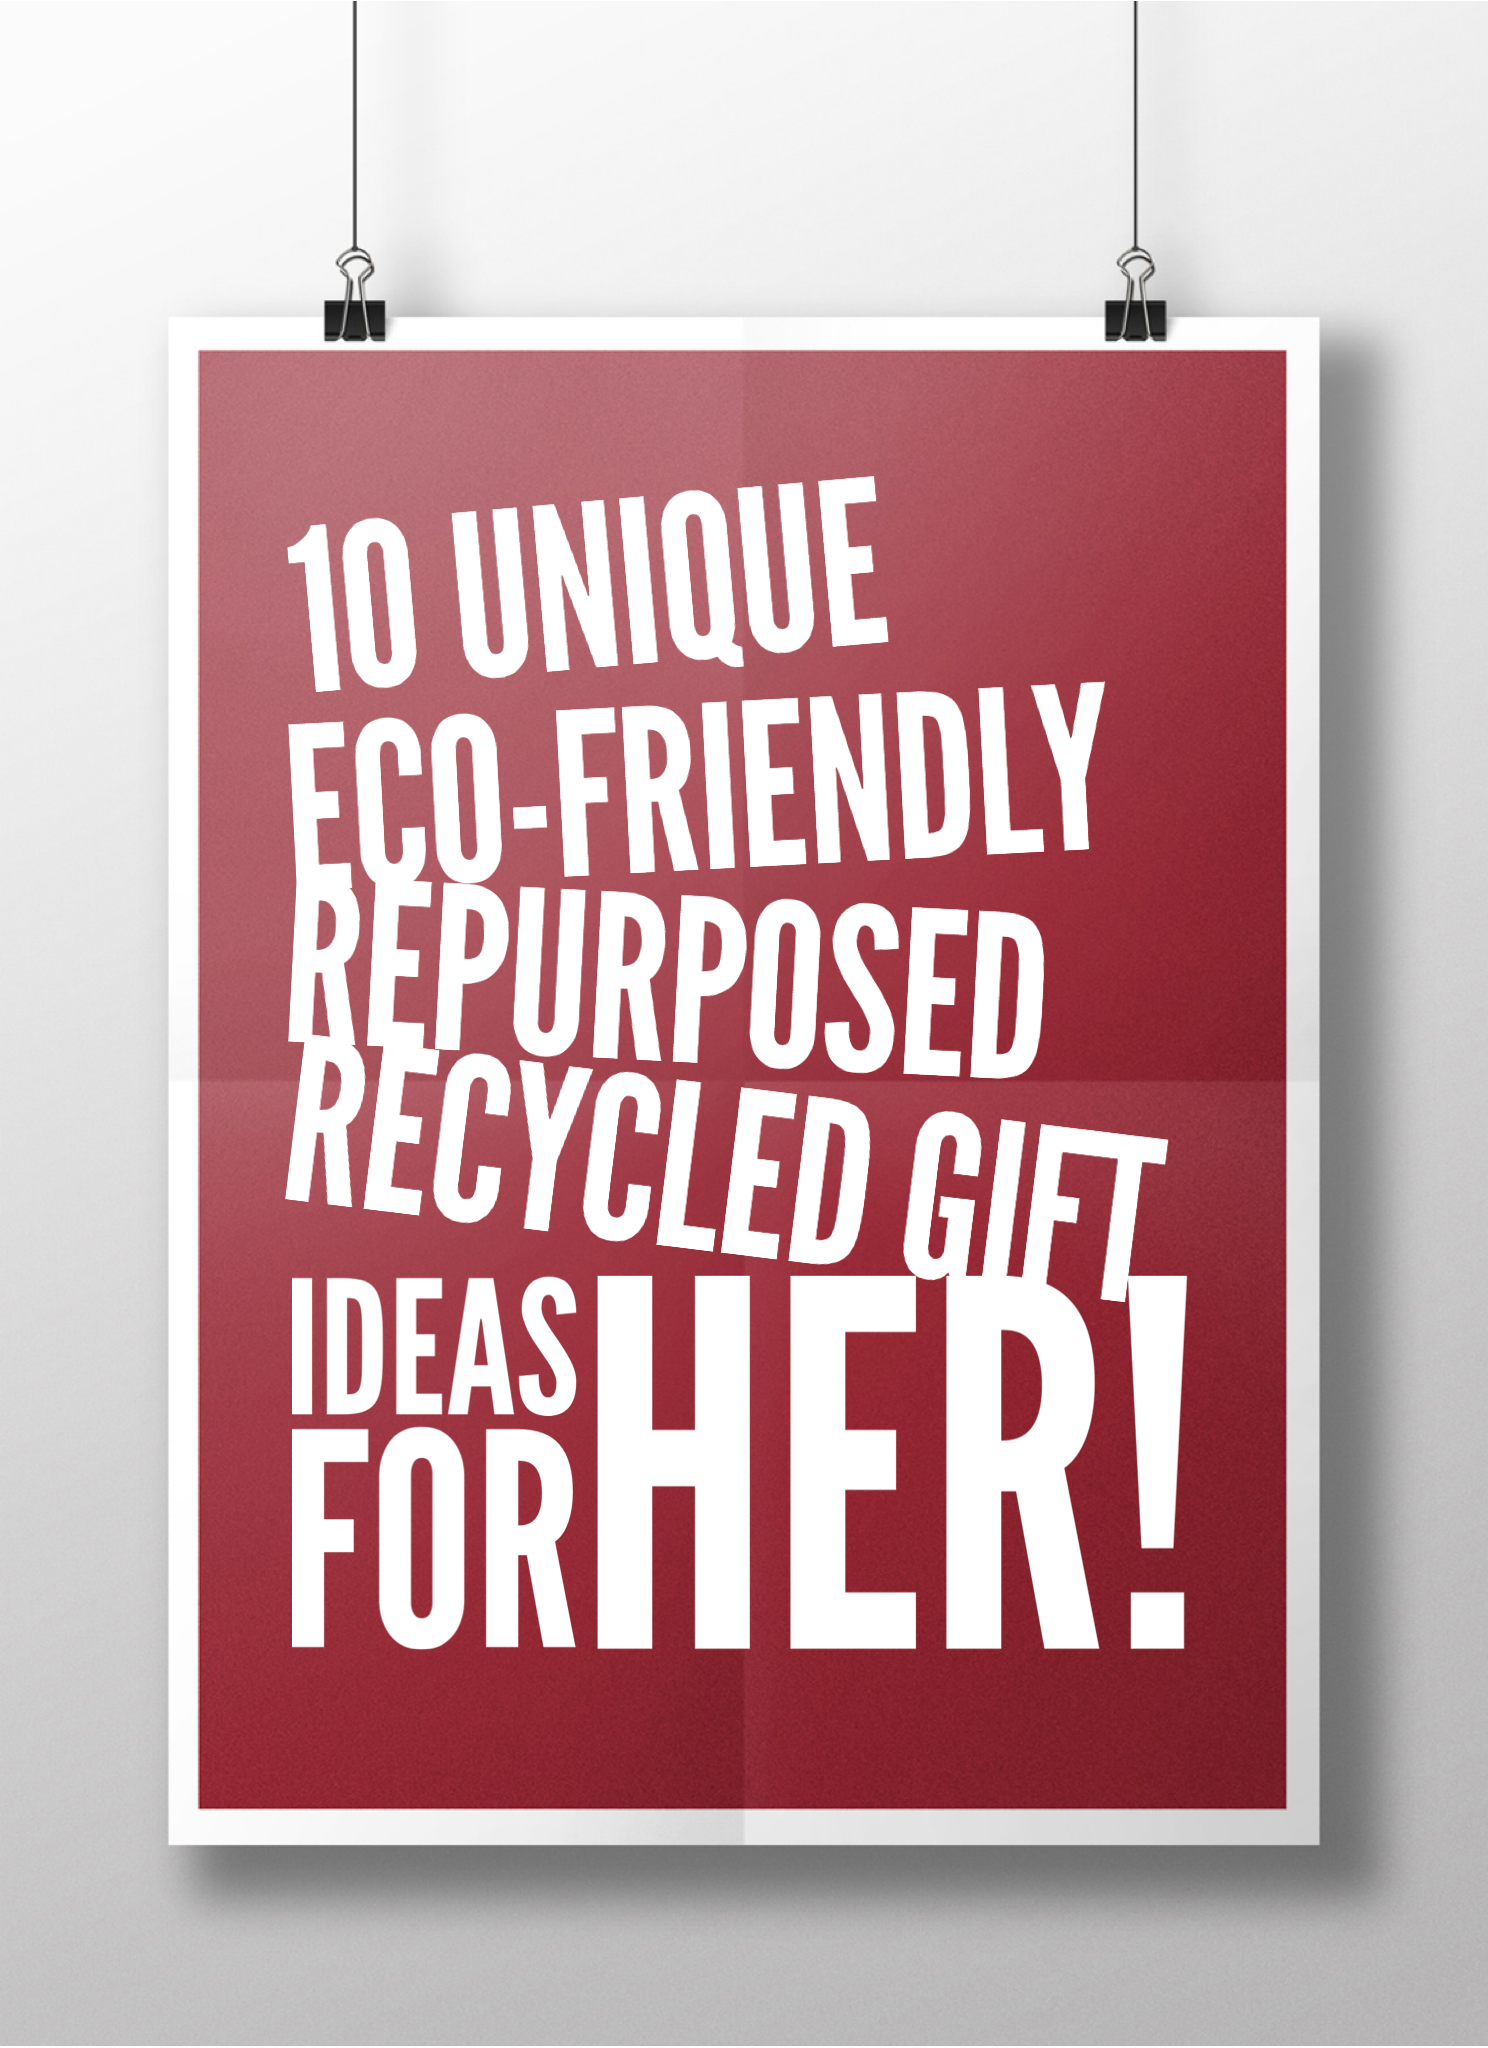 10 Unique Eco-Friendly Repurposed Recycled Gift Ideas for Her! -